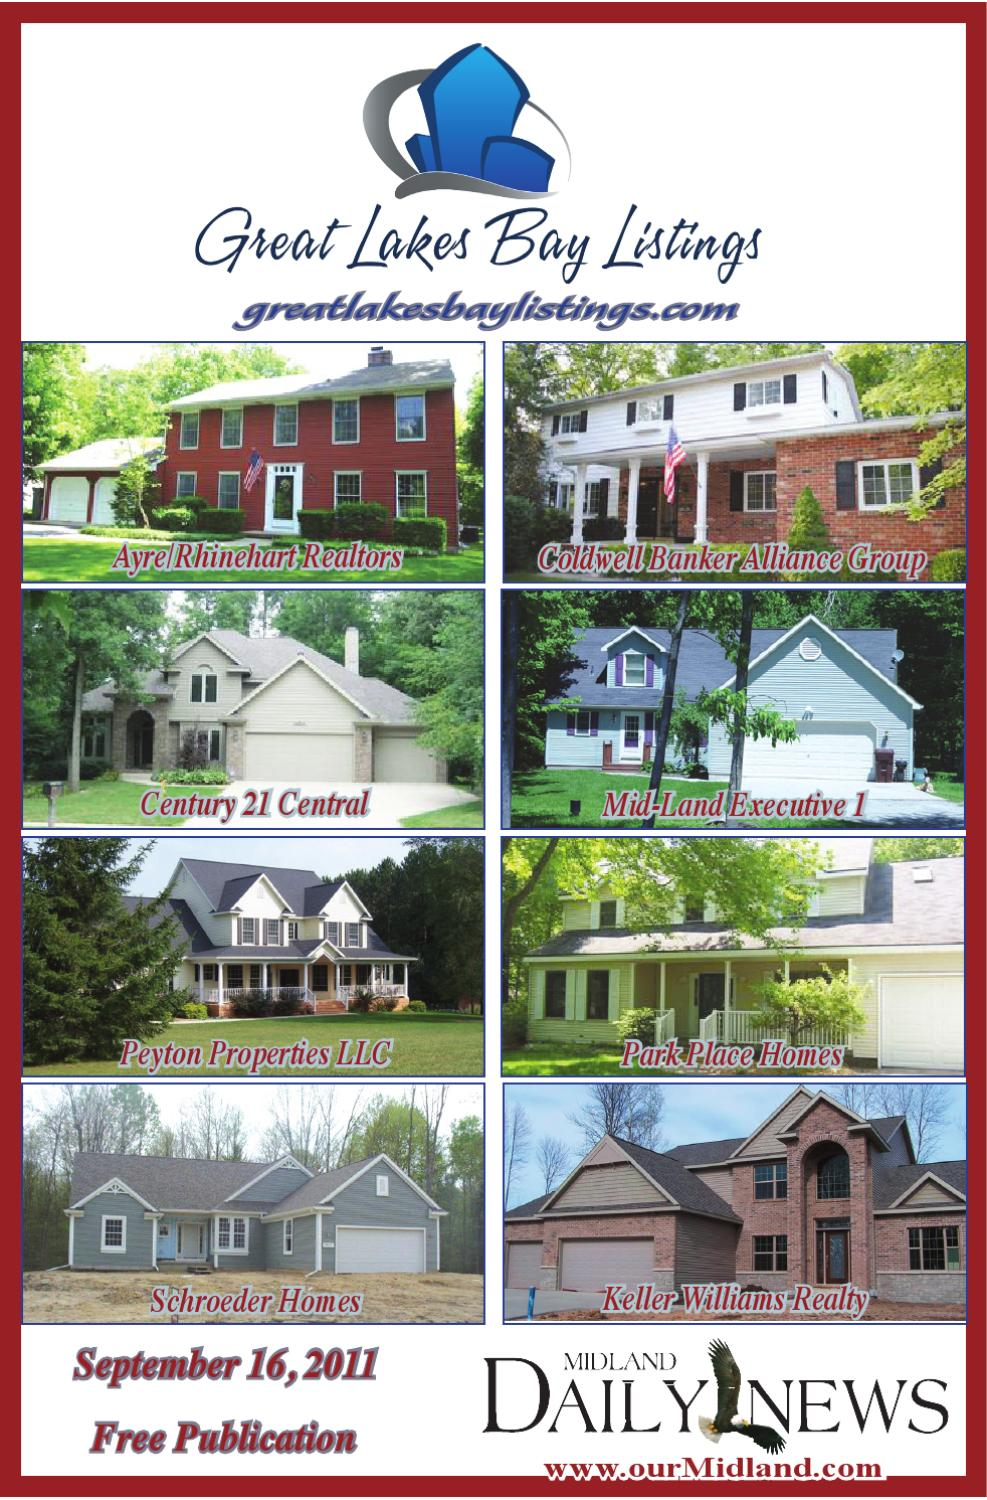 Great Lakes Bay Listings Real Estate Magazine 916 By Midland Daily